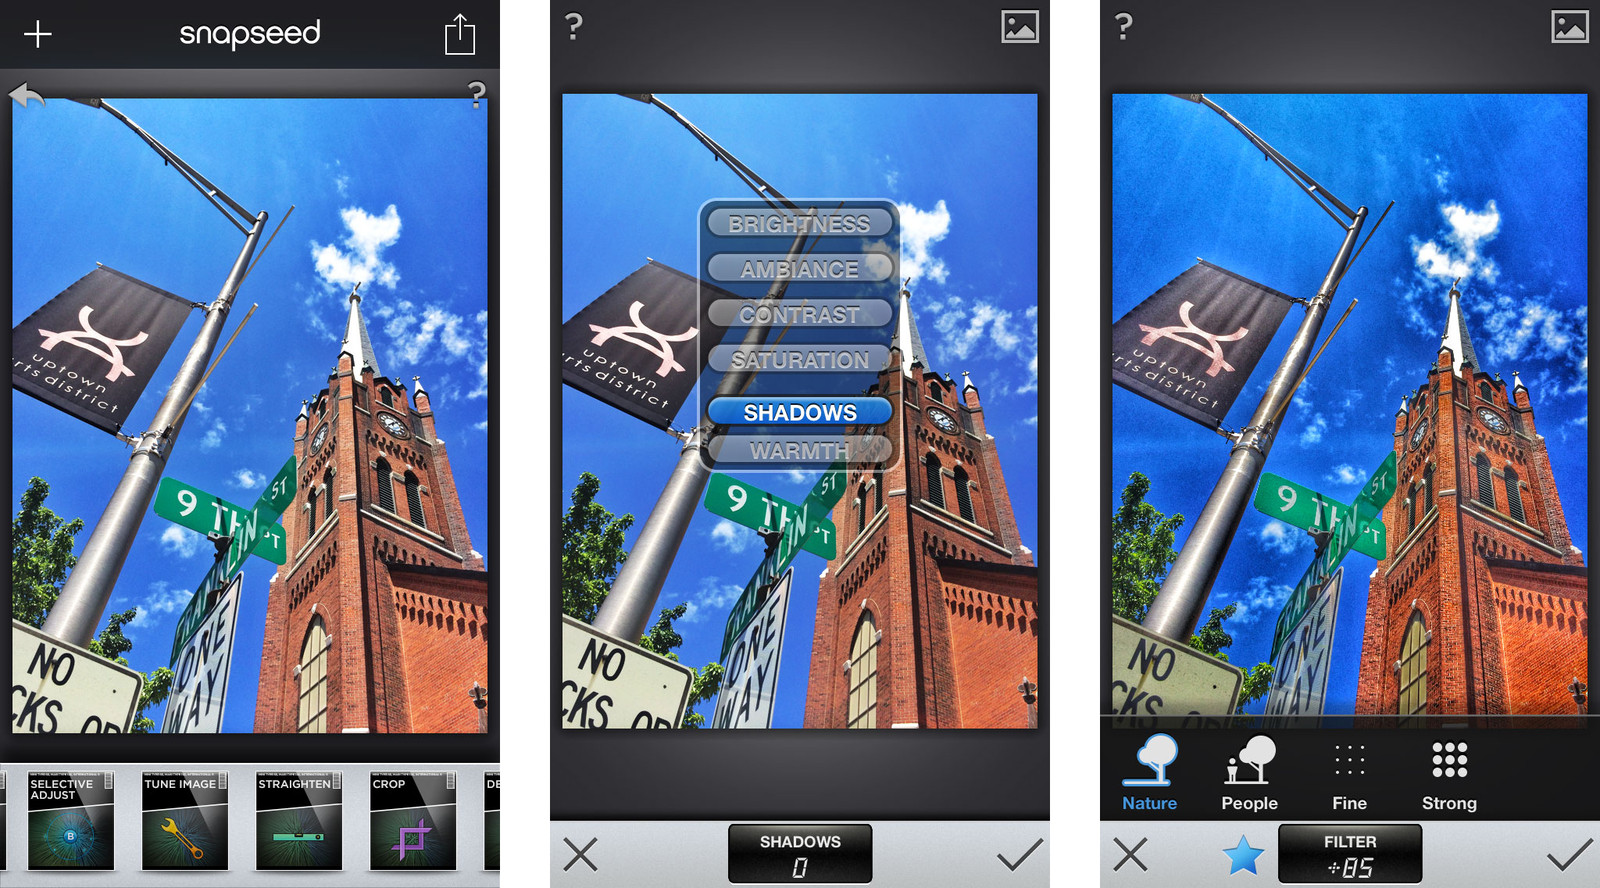 Best photo editing apps for iPhone: Snapseed